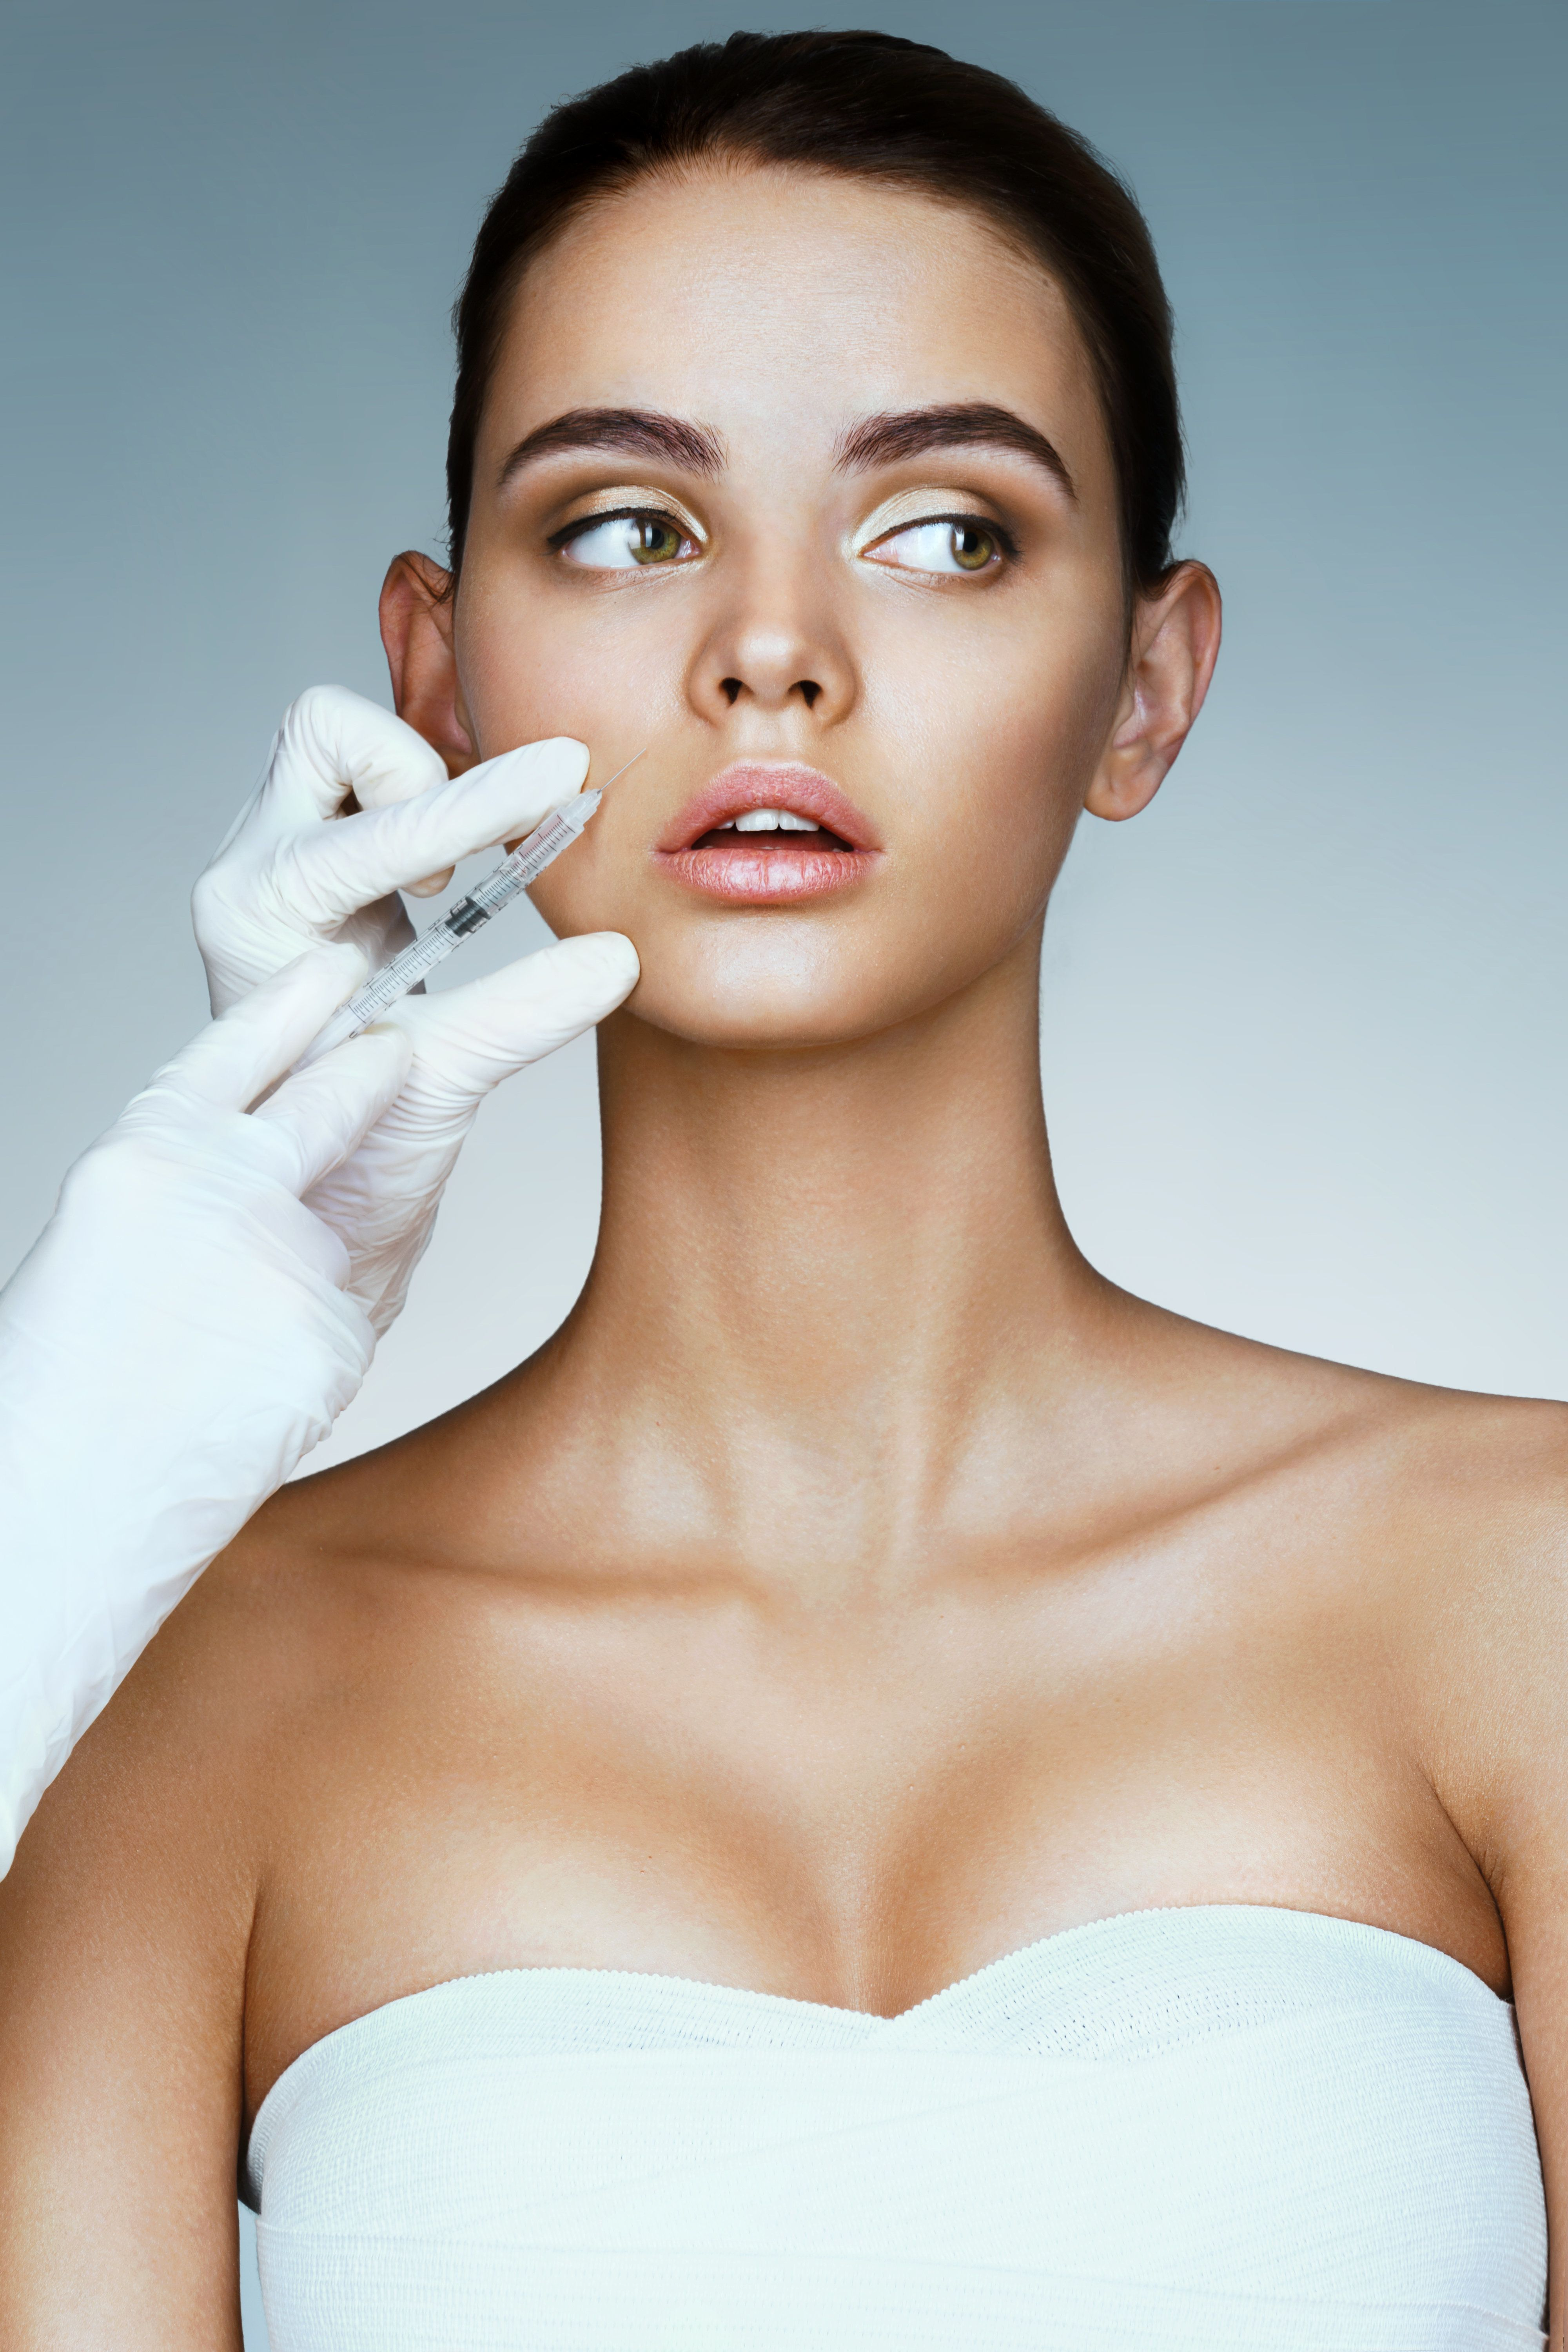 What Is A Nonsurgical Face-Lift? Plastic Surgeons